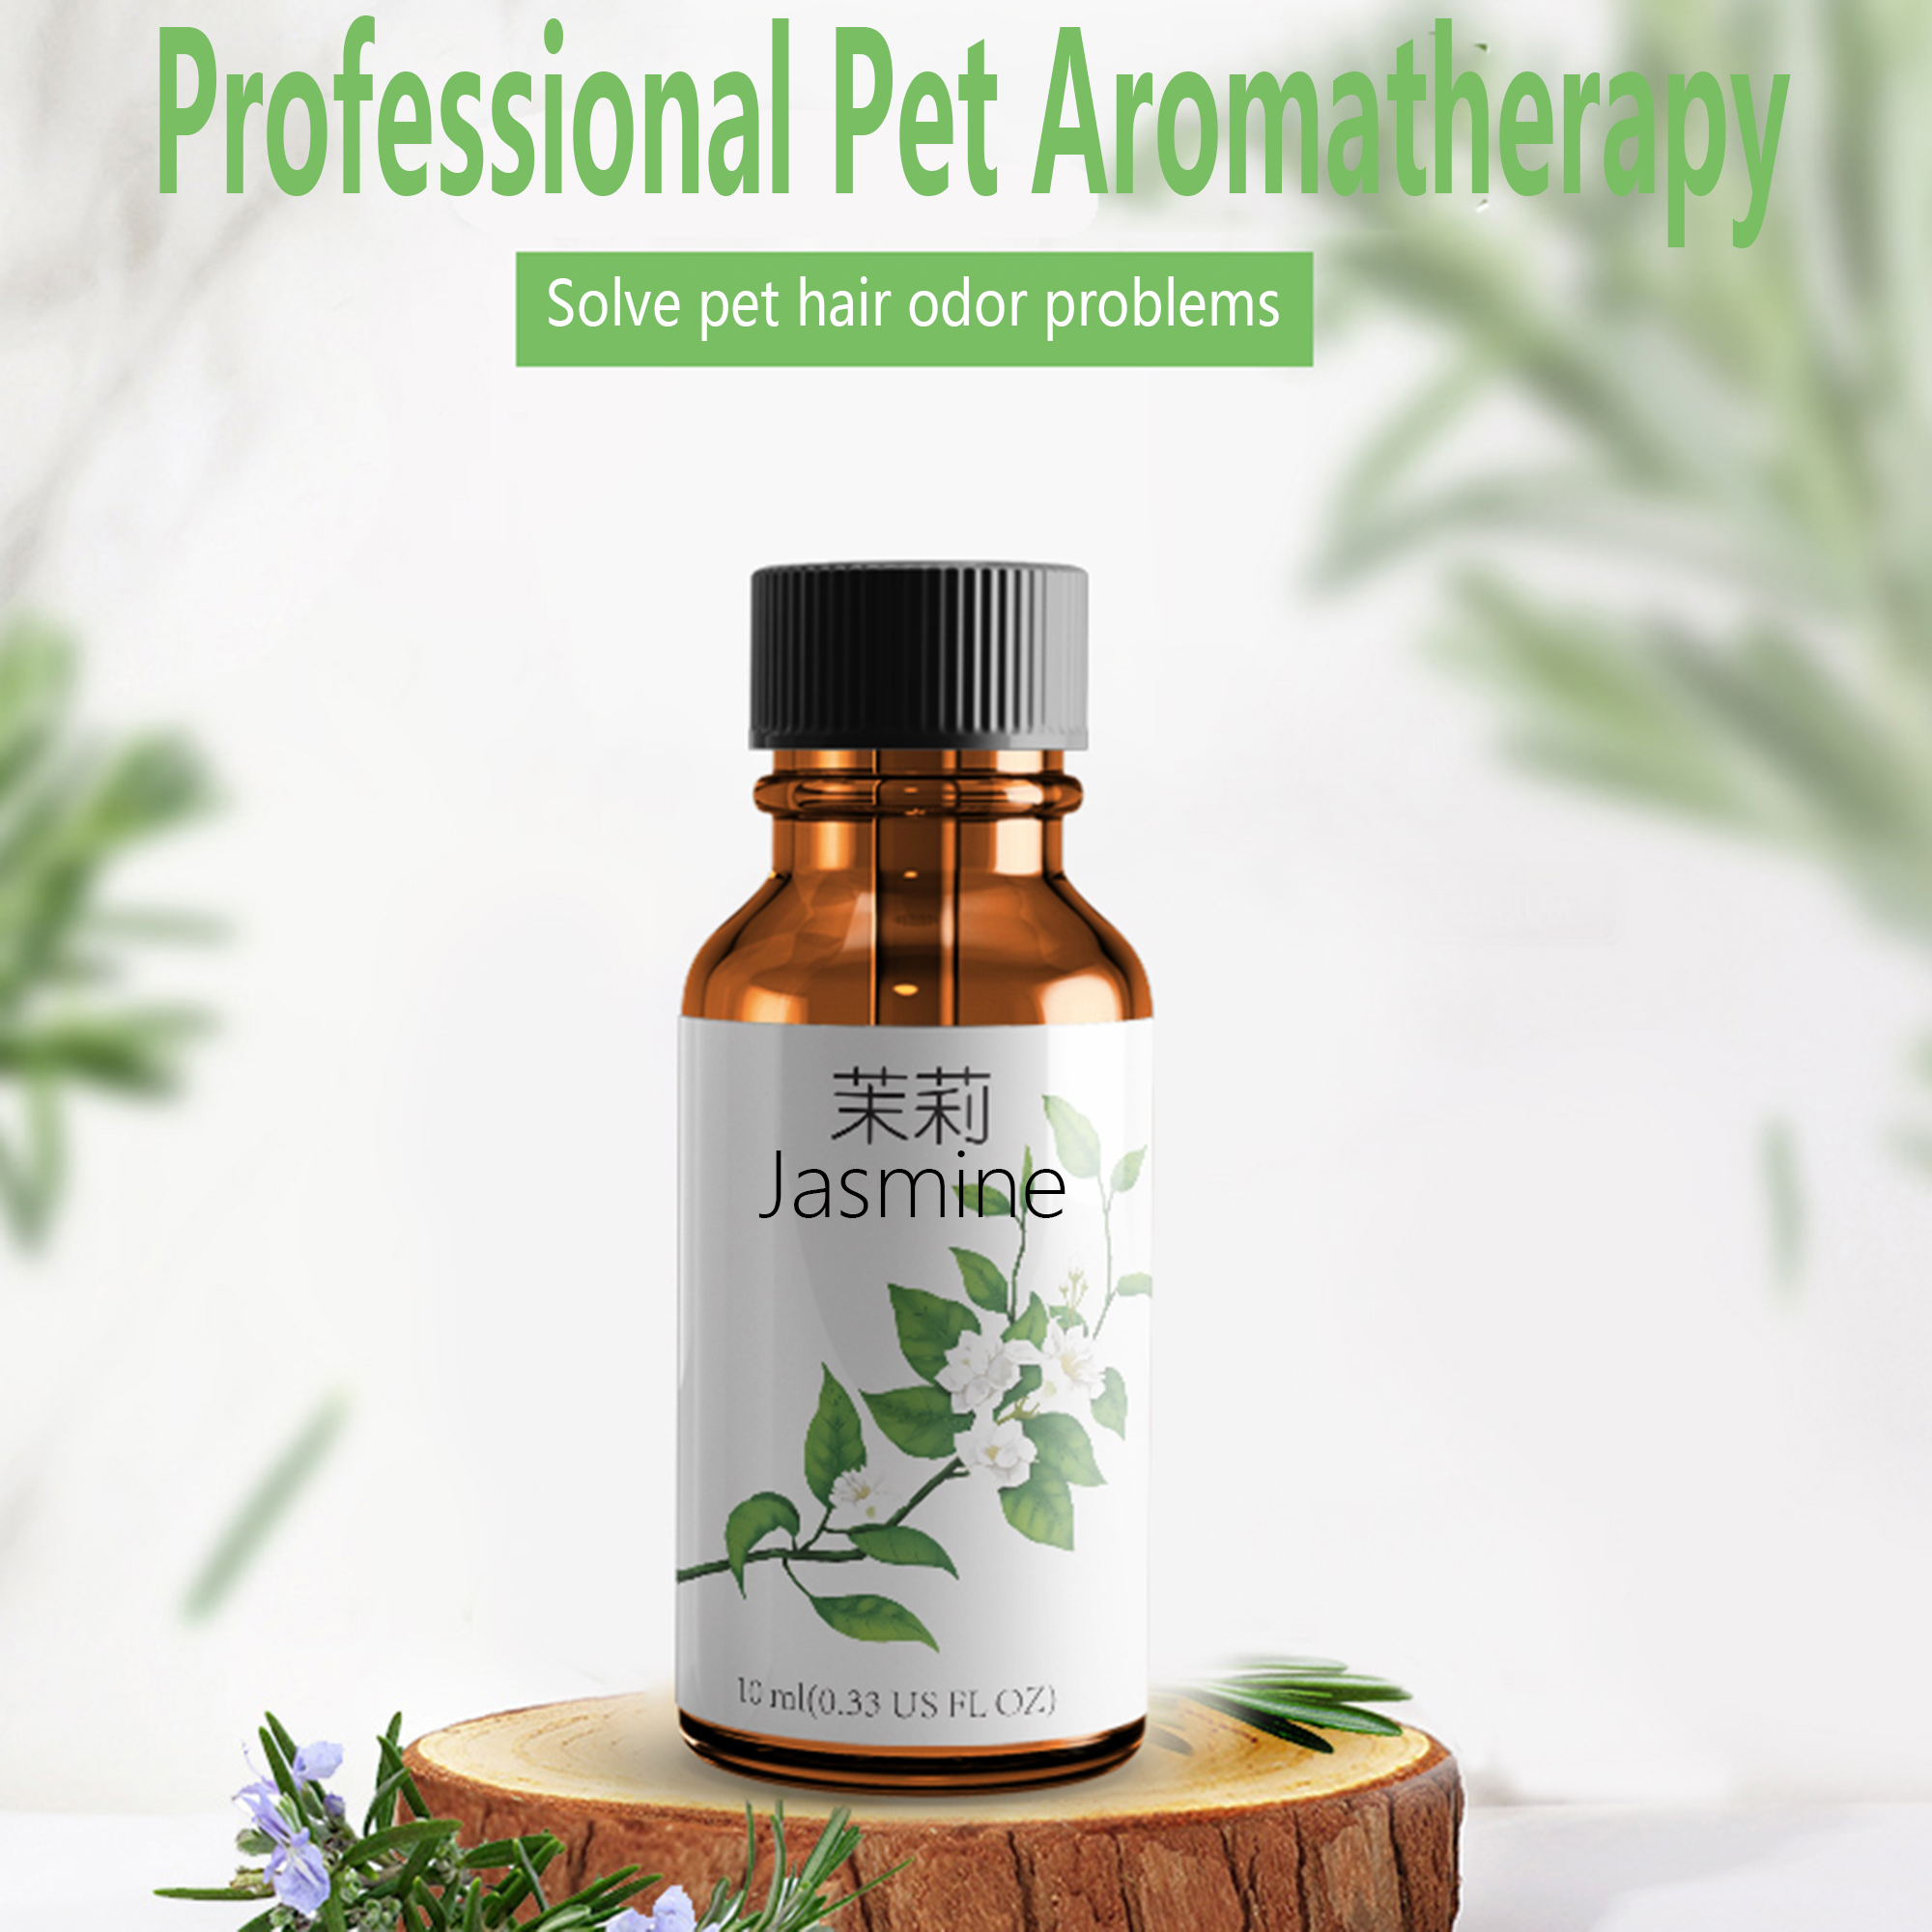 Natural Aromatherapy For Pets In Drying Box Baker Hair Skin Care Jasmine Lavender Lemon Grass Scent